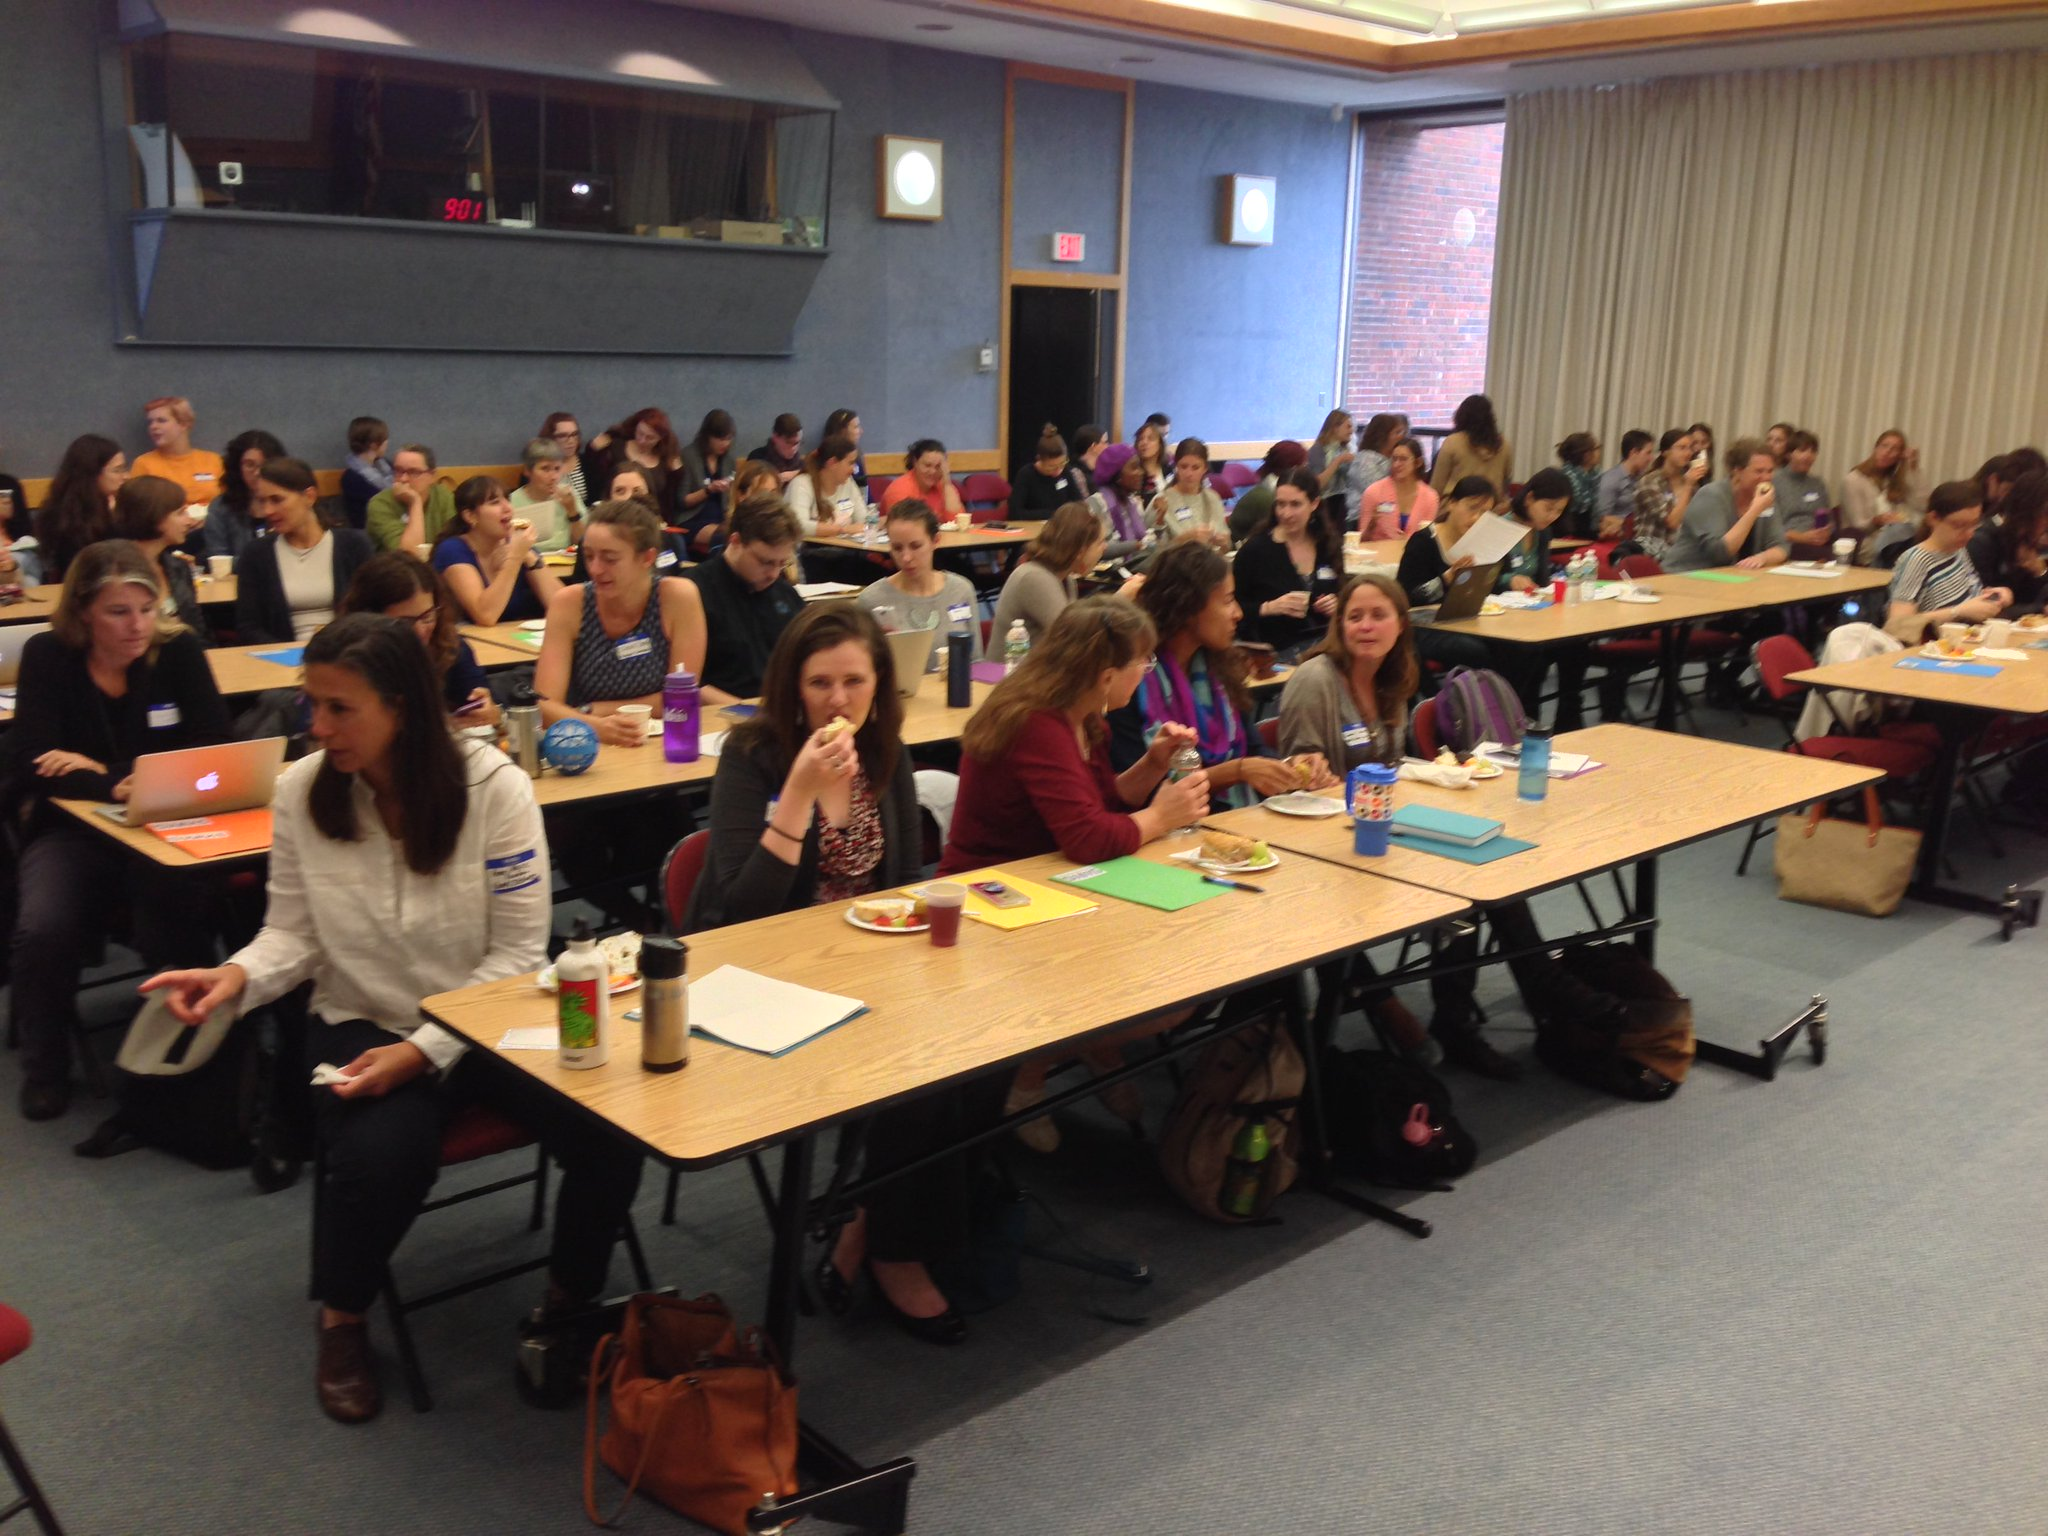 Full house at #WHOI for the Society for Women in Marine Science 3rd annual symposium! #SWMS16 #womeninSTEM https://t.co/izRzfatcK9